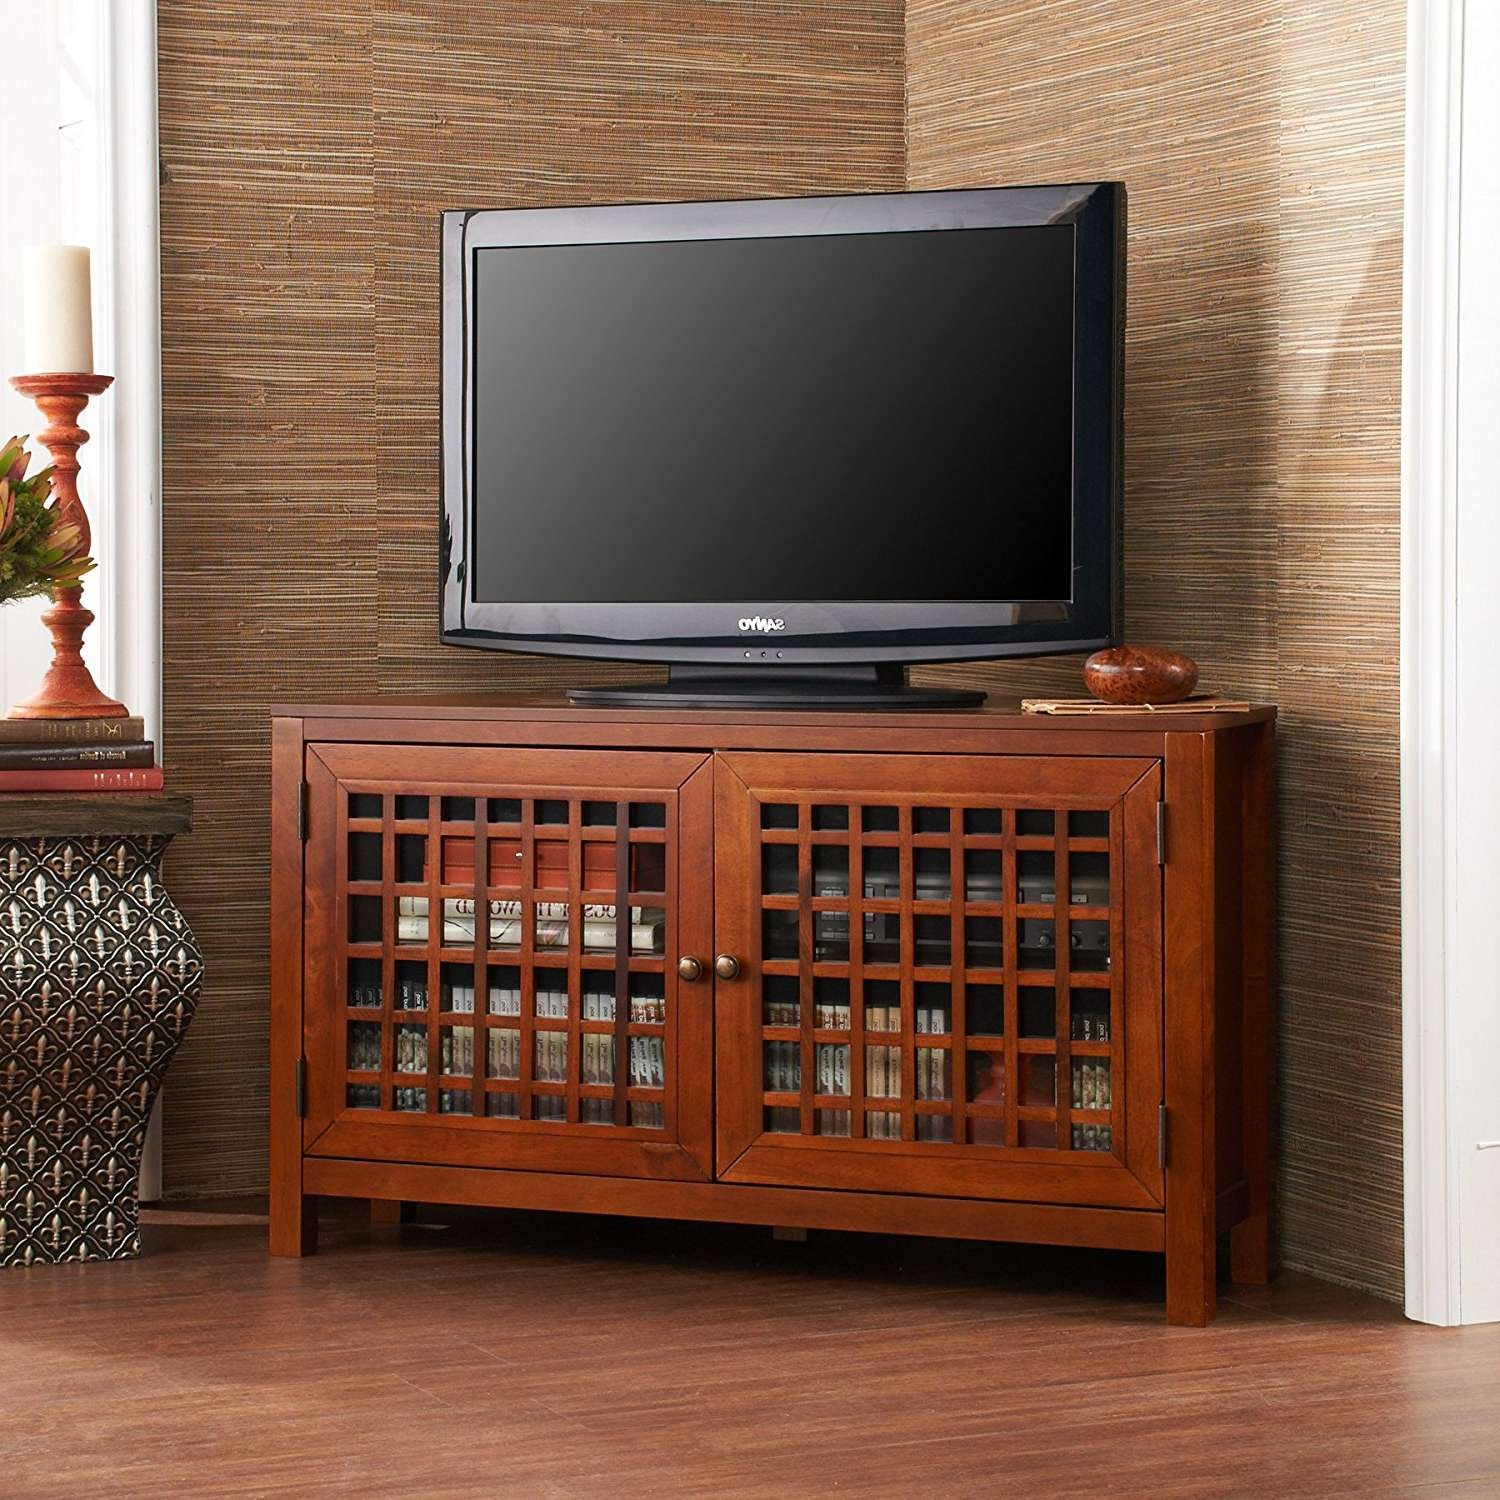 Tv : Amazing Tv Stands Rounded Corners Concepts Corner Tv Stand Within Tv Stands Rounded Corners (View 3 of 15)